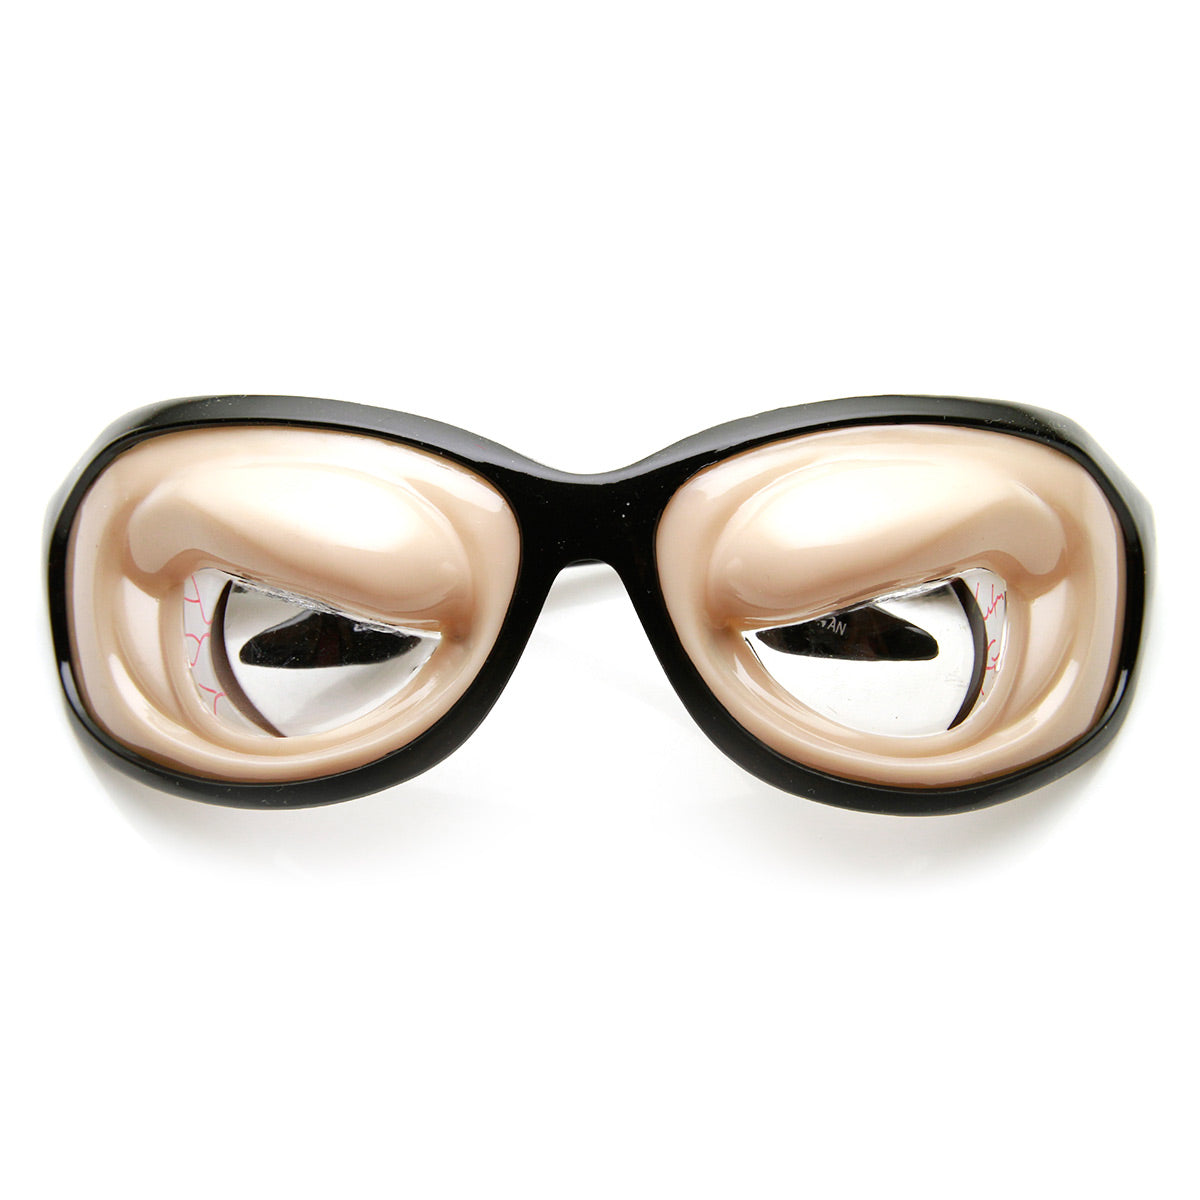 34c1ab2e0b Buldging crazy eyes silly funny novelty costume party glasses jpg 1200x1200  Crazy goggles